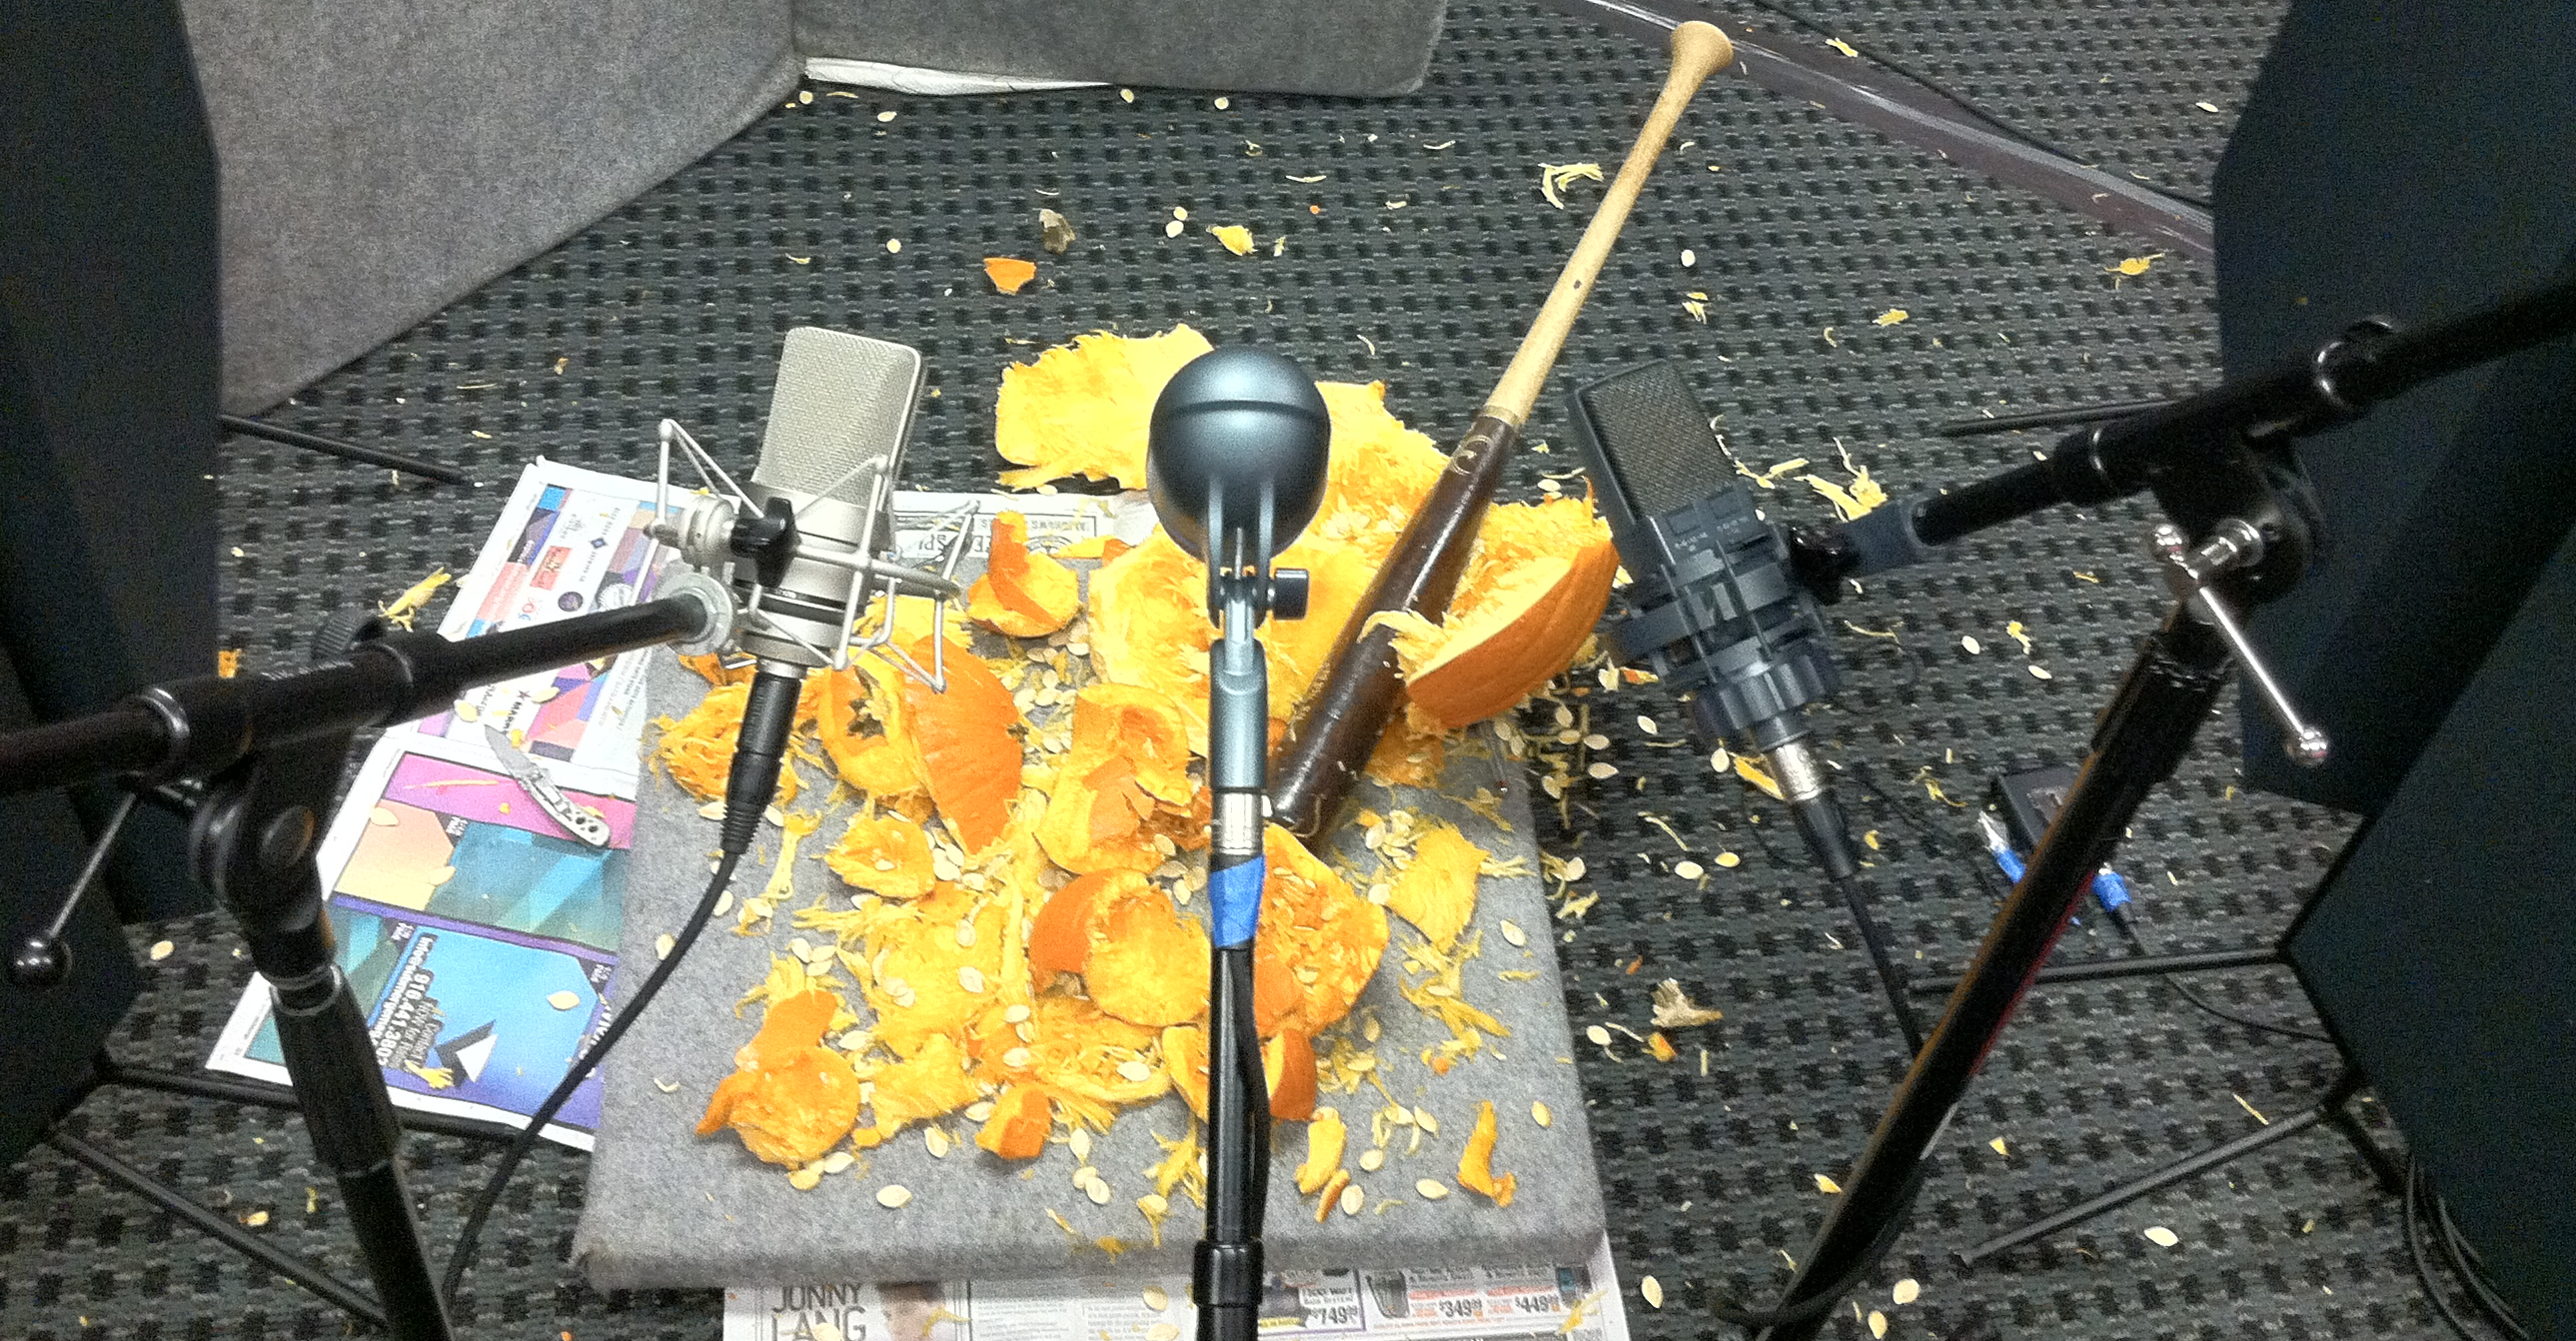 The aftermath of the pumpkin smashing.